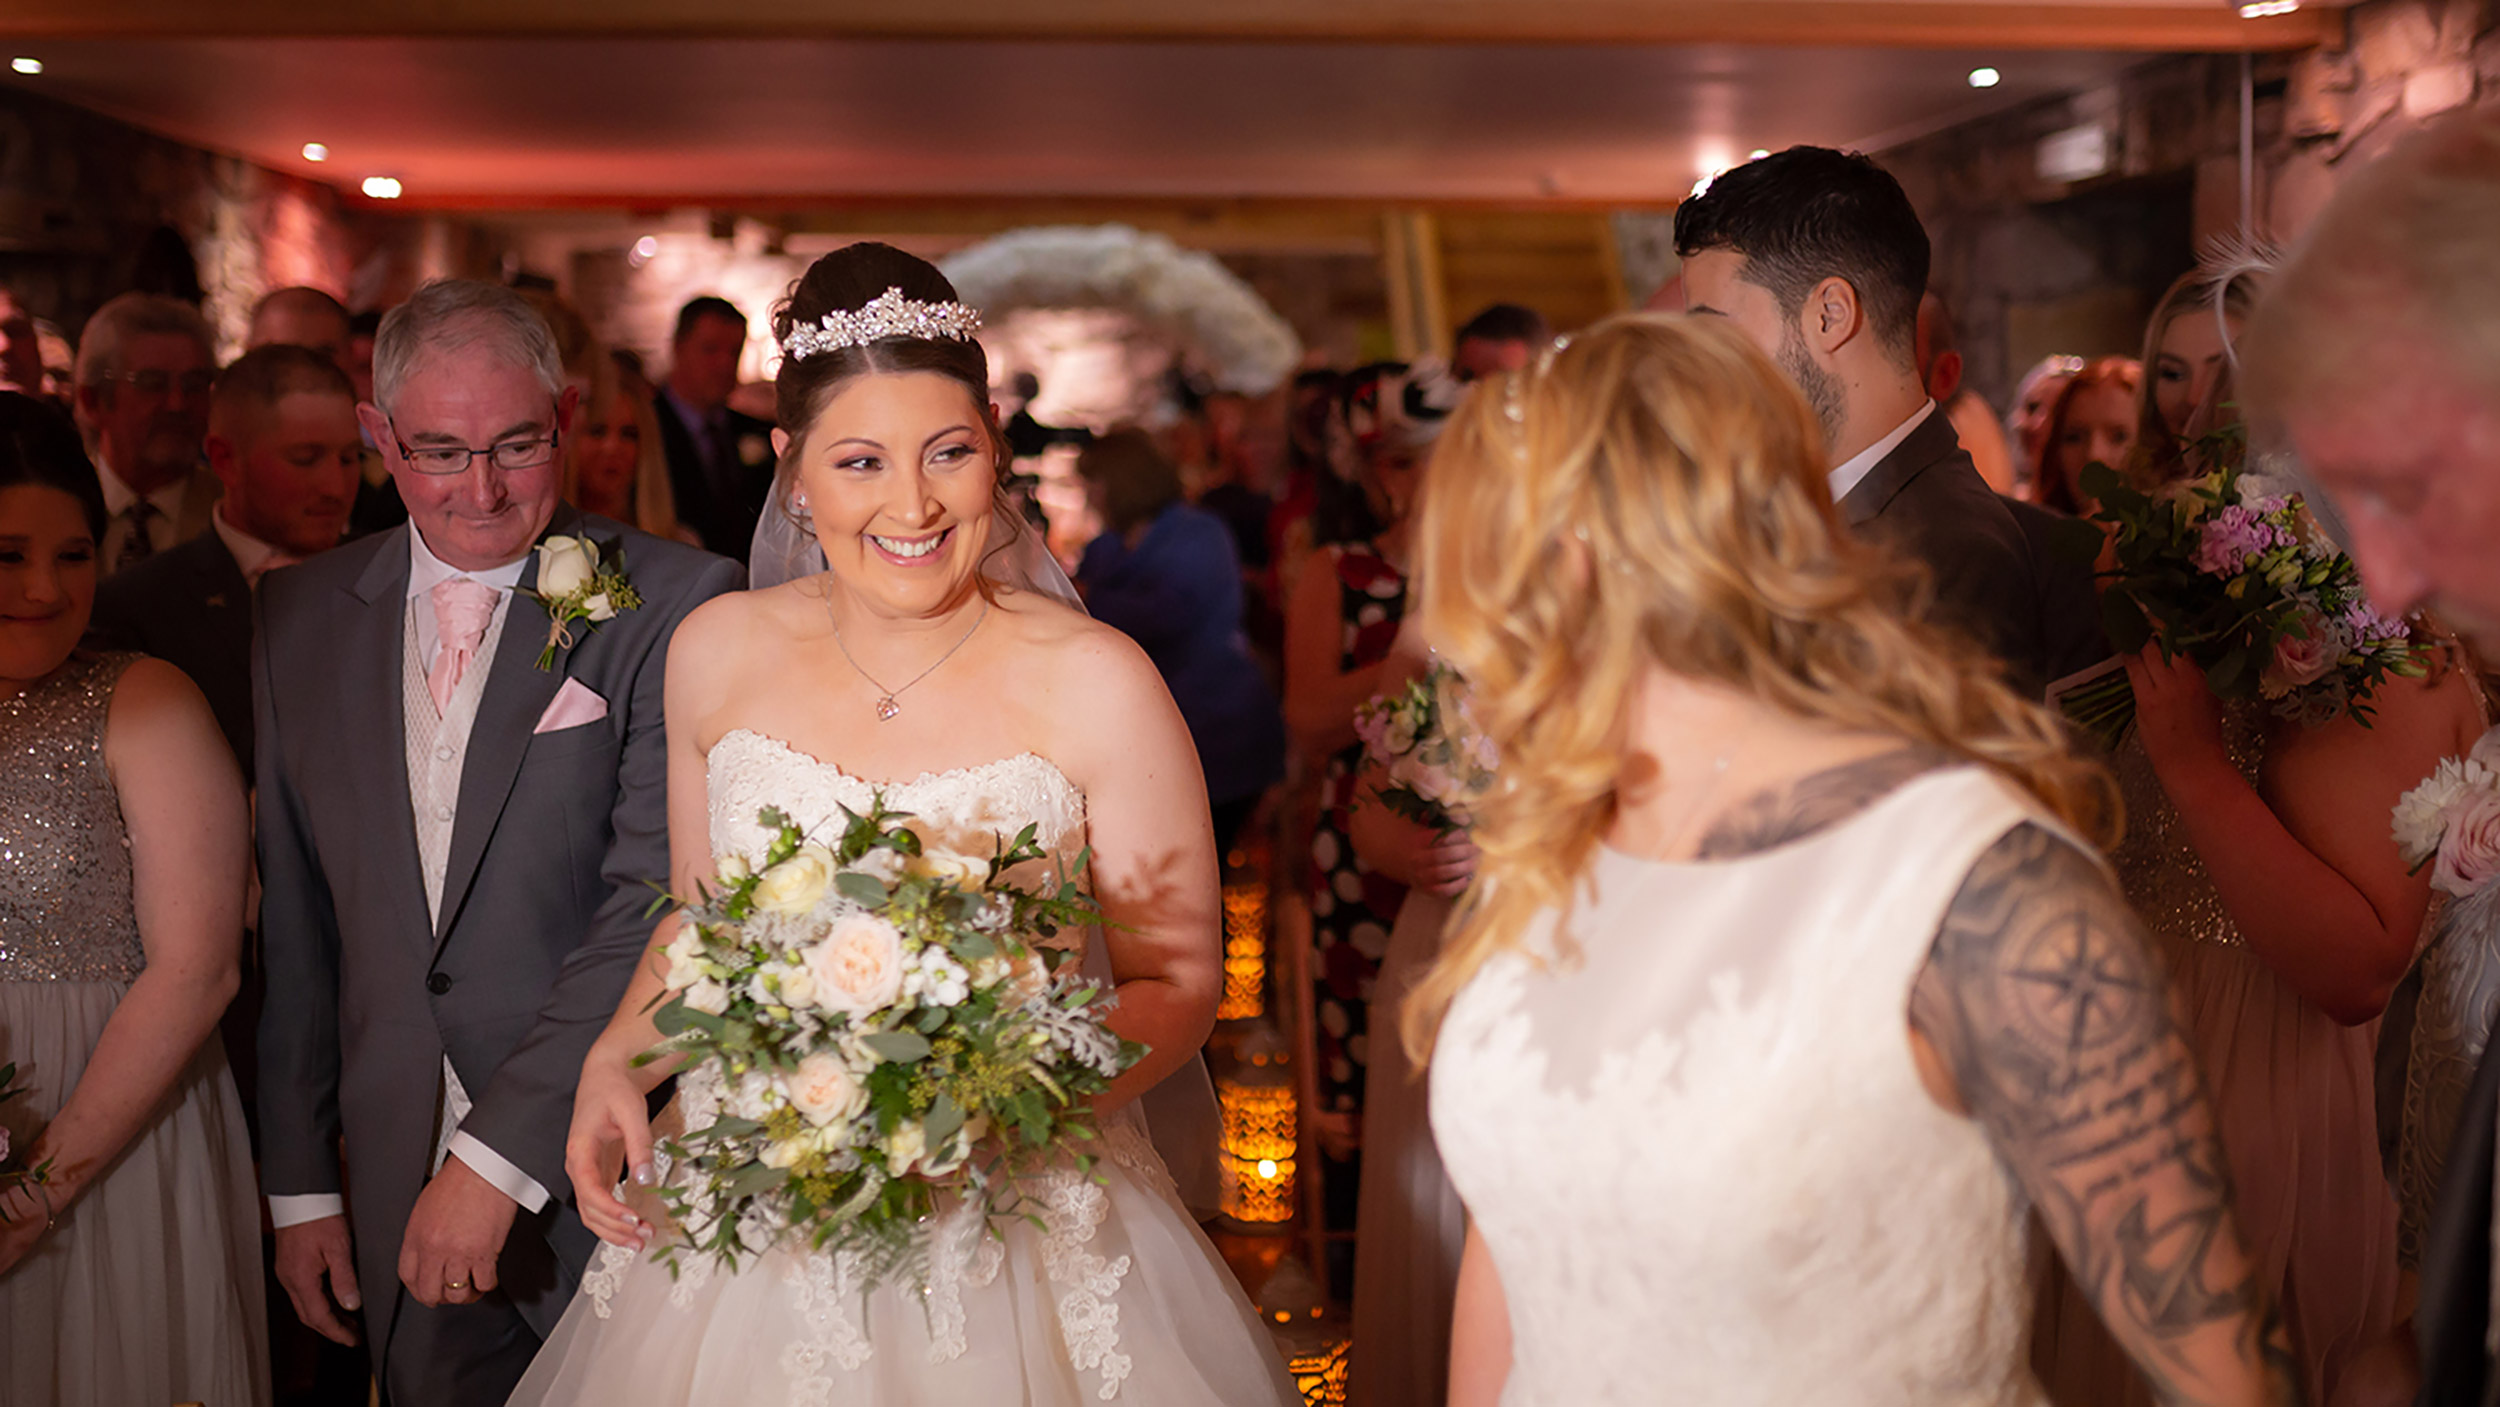 intimate indoor ceremony setting for same-sex Abbie & Emma at Tower Hill Barns photographed by NR Imagery